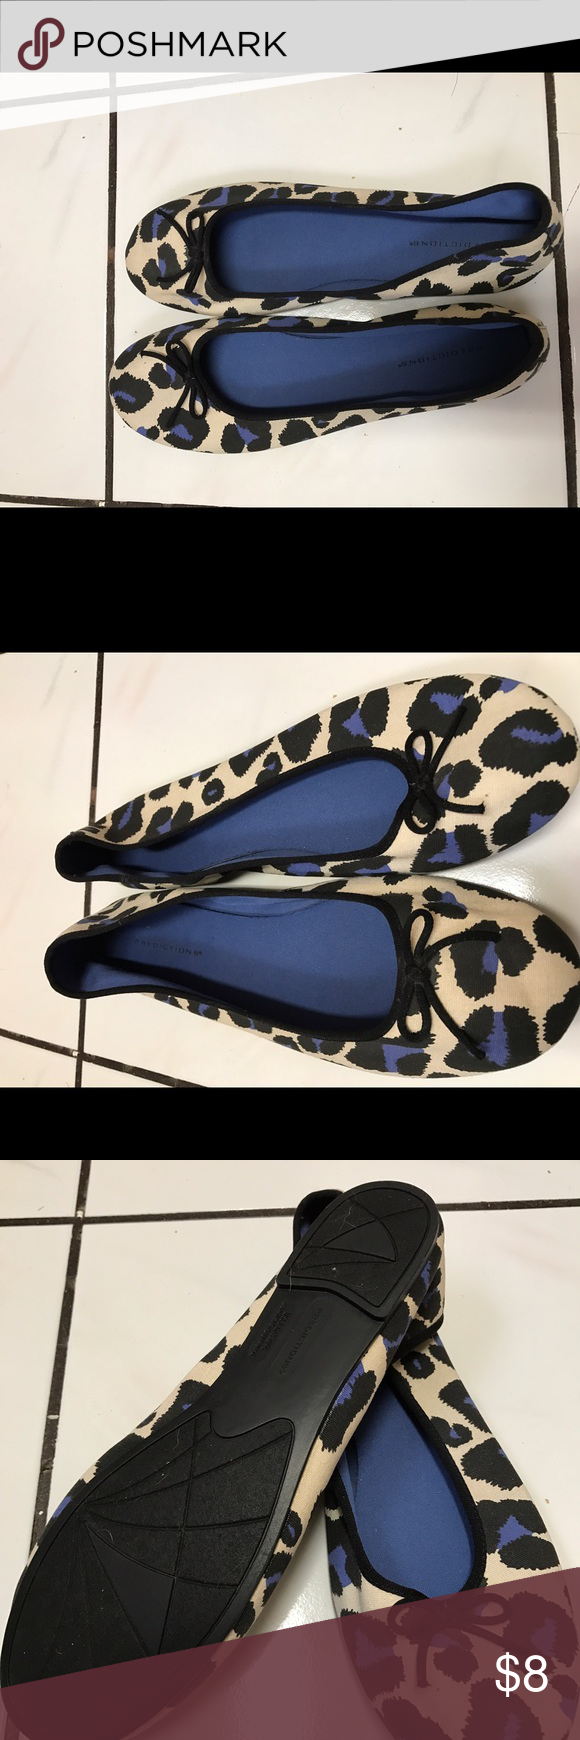 Cream color flats with blue cheetah prints Cream color flats with blue cheetah prints. Shoe has a little black bow on the toe area. Never worn, brand new. Comes from a smoke free, pet friendly home. Shoes Flats & Loafers